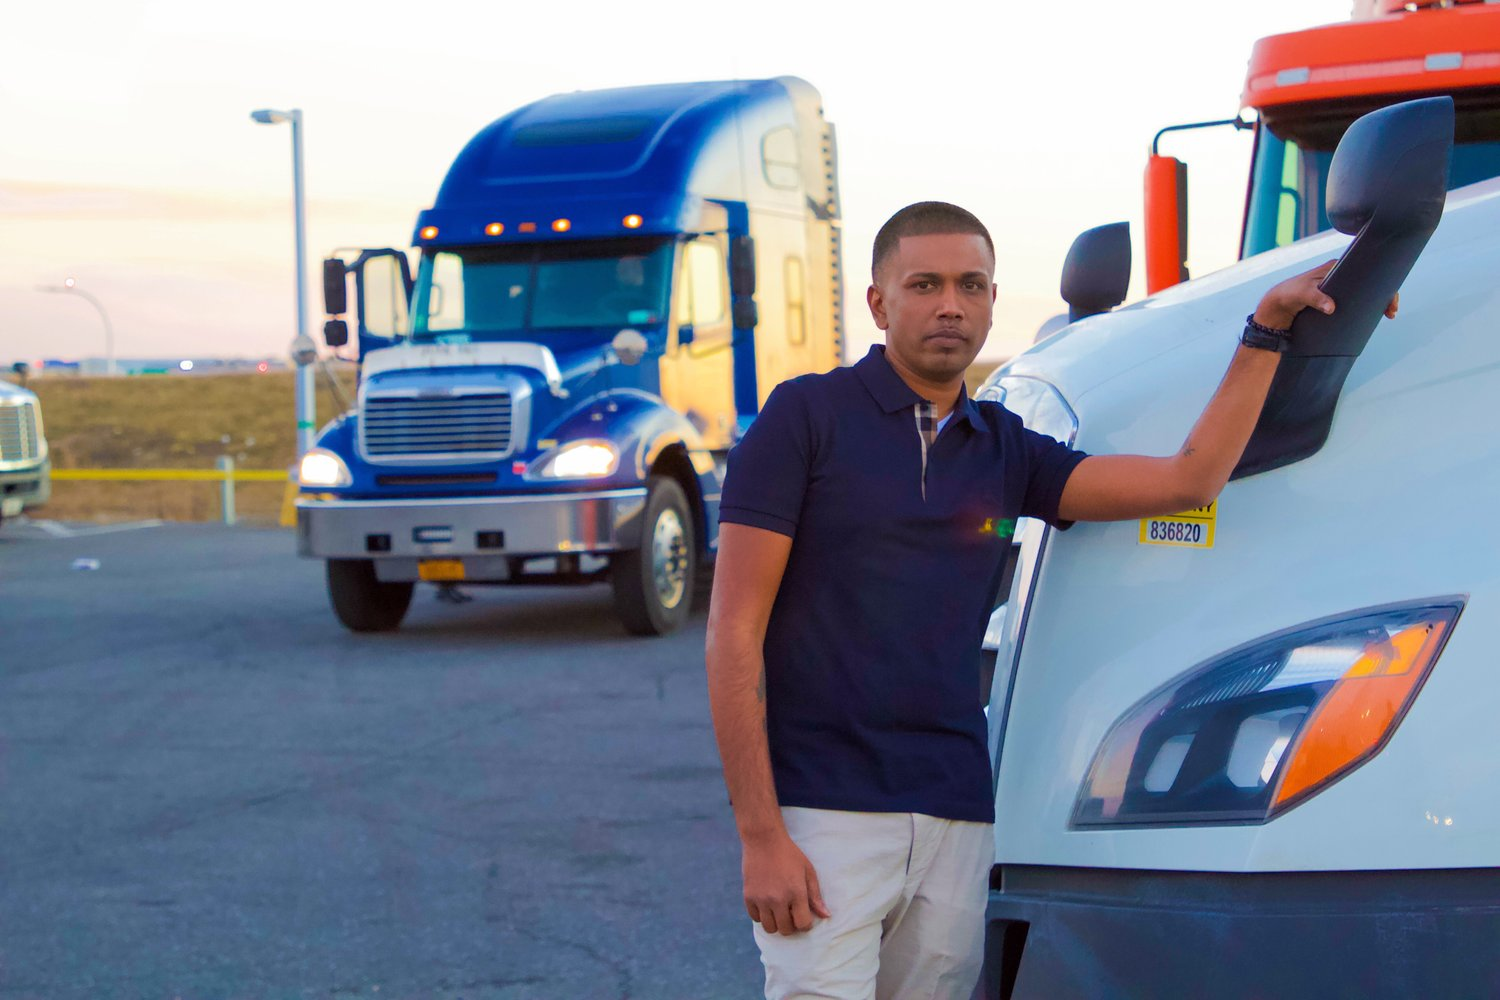 Freeporter and Guyana native Ken Deocharran, 37, started his trucking and courier service business in 2006, and through his contracts with Amazon, has since built a $15 million company, with roughly 120 trucks delivering goods throughout the tristate area and in Chattanooga, Tenn.